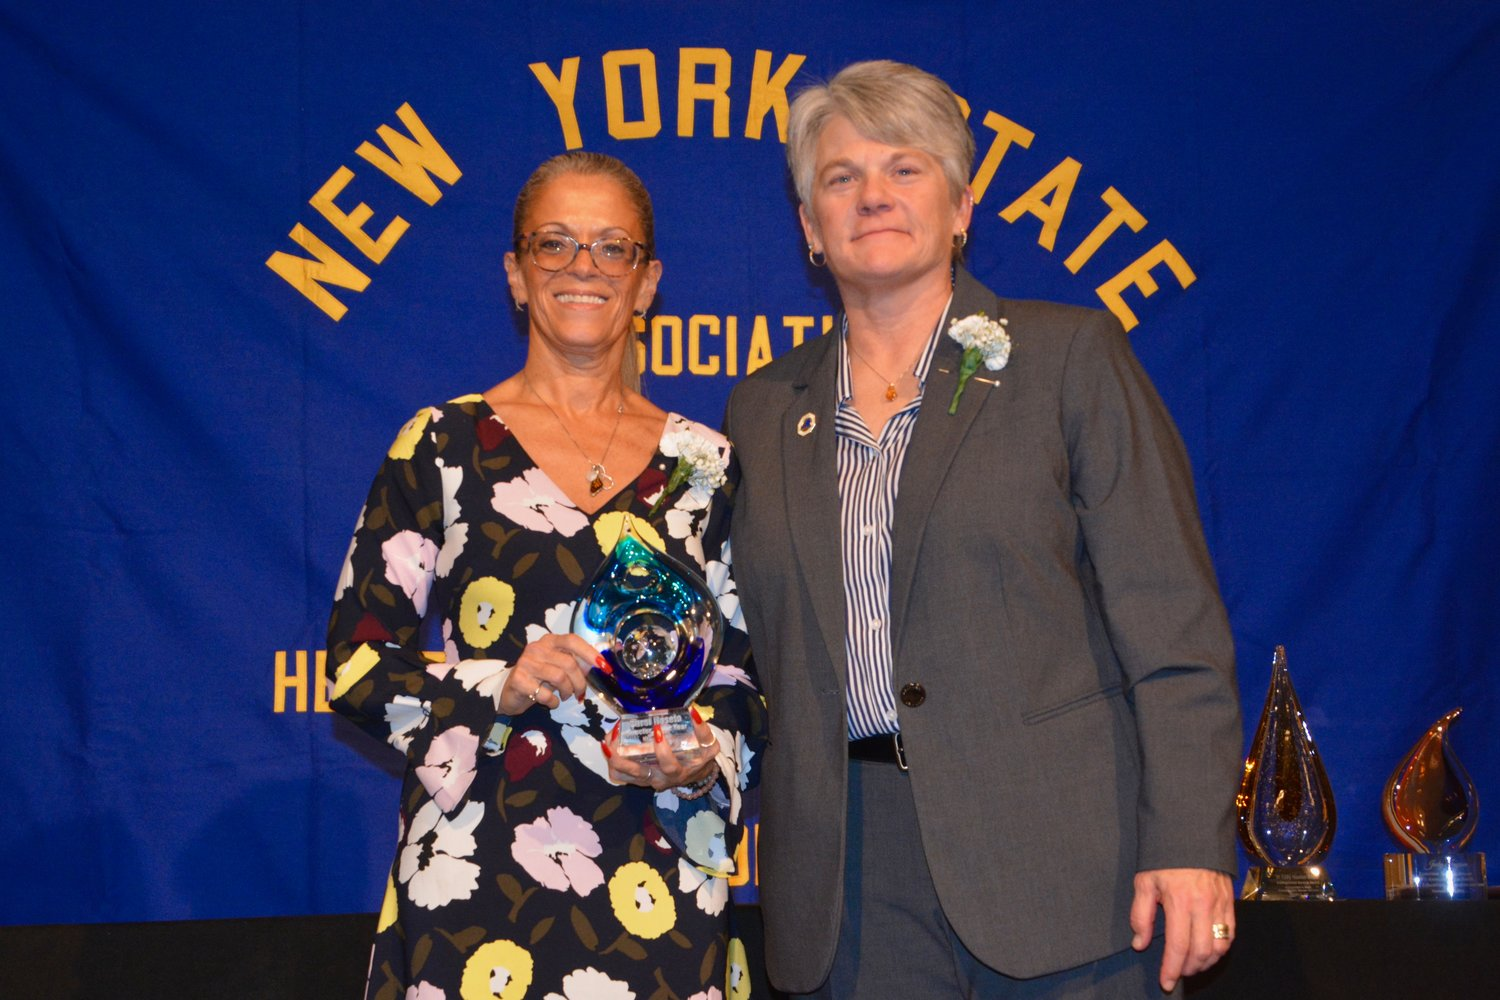 RVC Athletic Director Carol Roseto, left, with Dr. Tam Ray, president of the New York State Association for Health, Physical Education, Recreation and Dance.